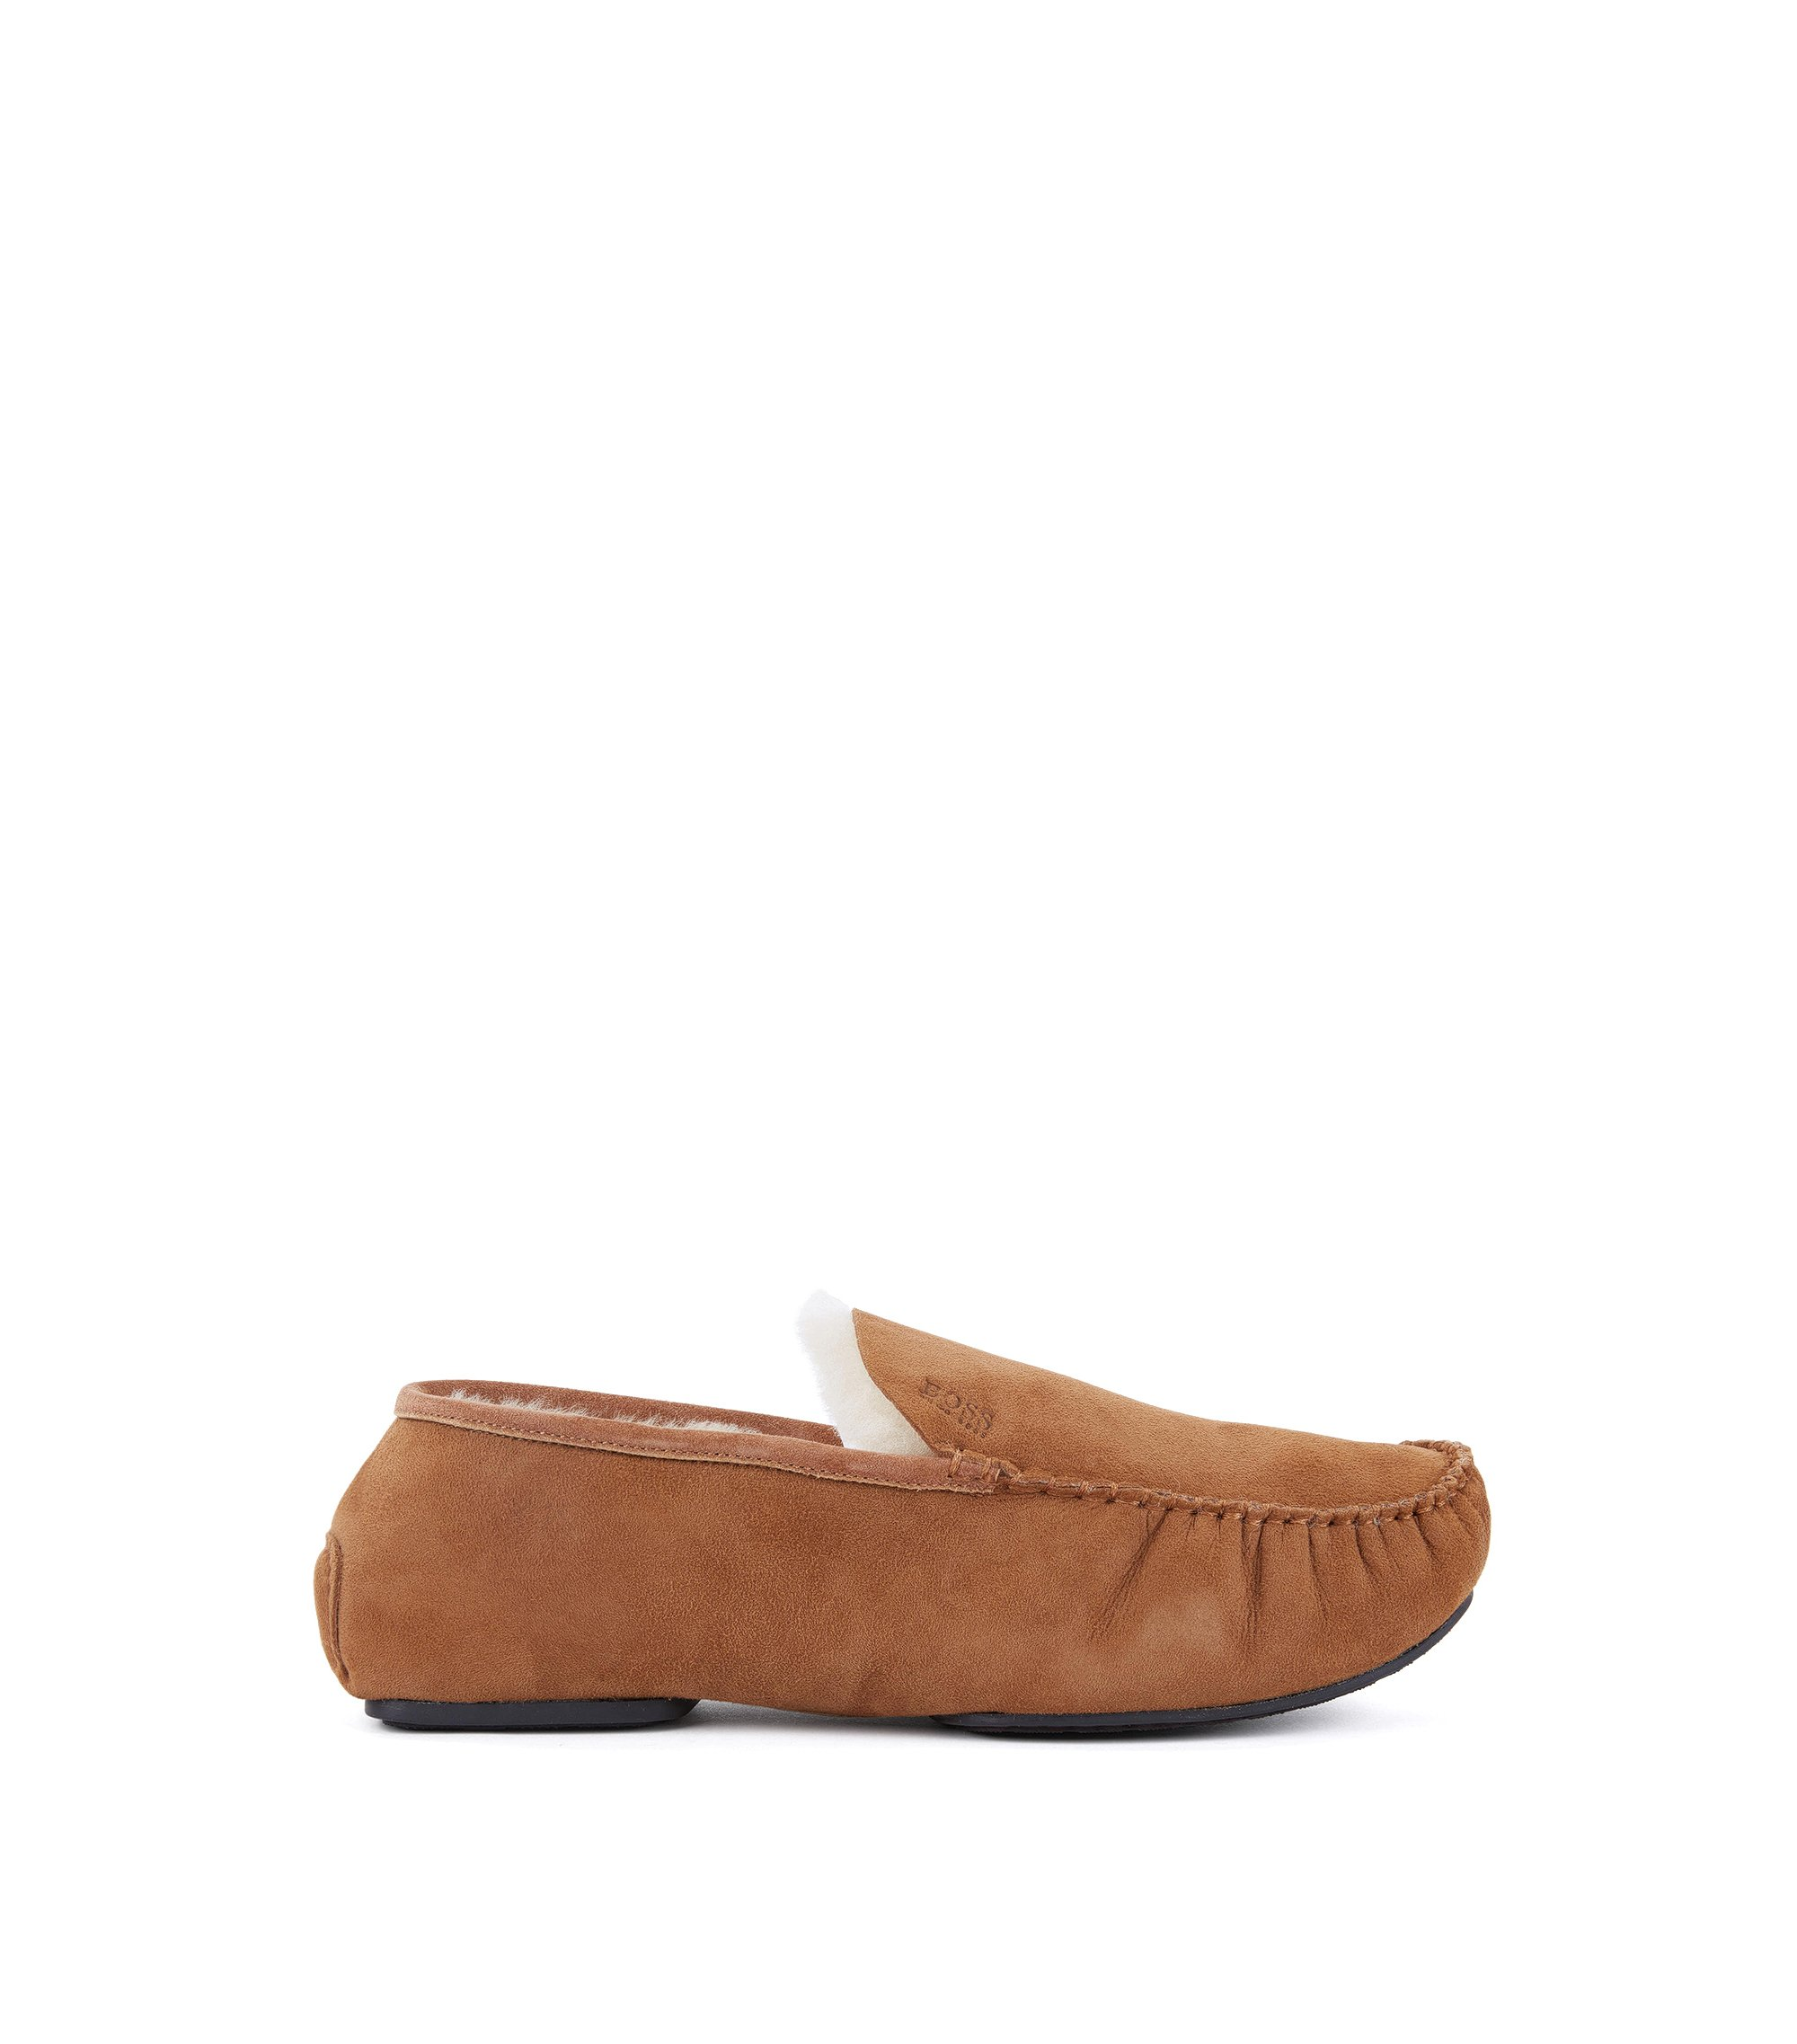 Suede moccasins with shearling lining, Brown